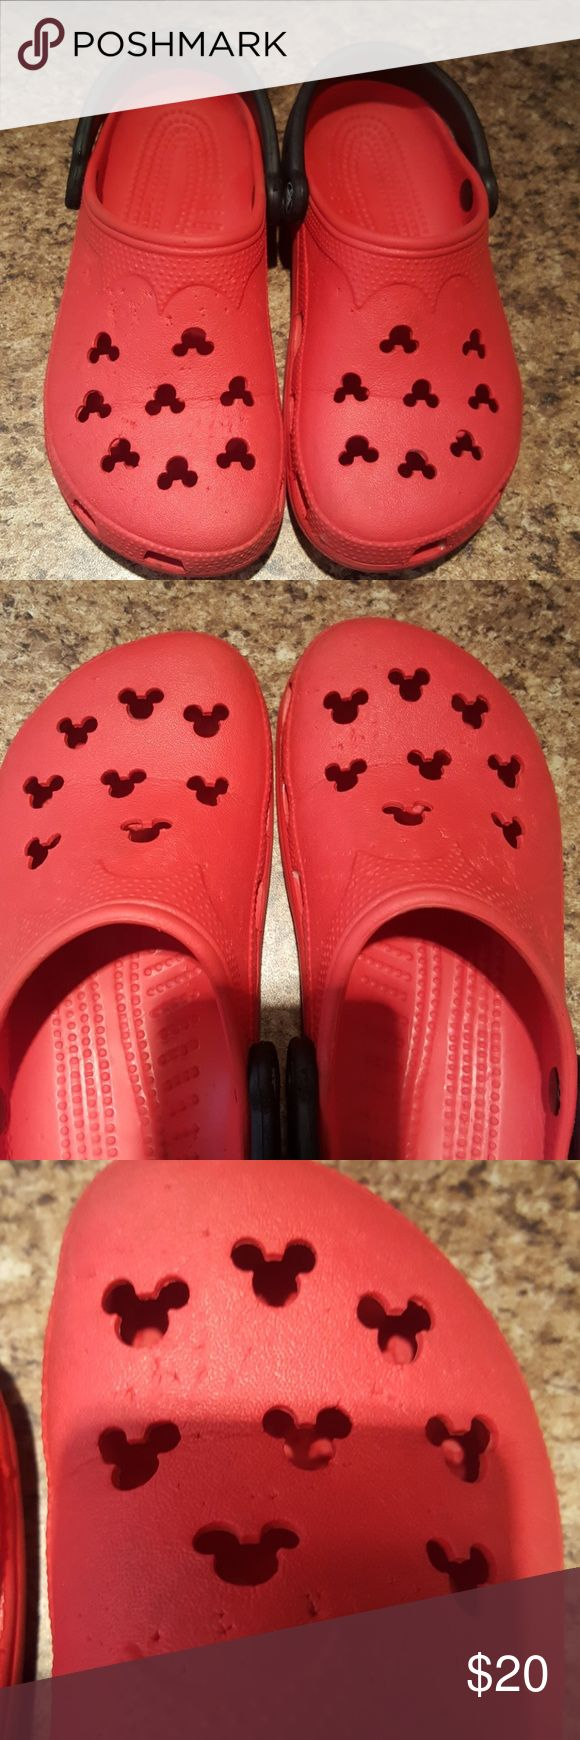 SIZE 6 WOMEN'S DISNEY CROCS GUC SIZE 6-7 WOMEN'S CROCS DISNEY MICKEY MOUSE LOGOS SUPER CUTE CROCS Shoes Flats & Loafers